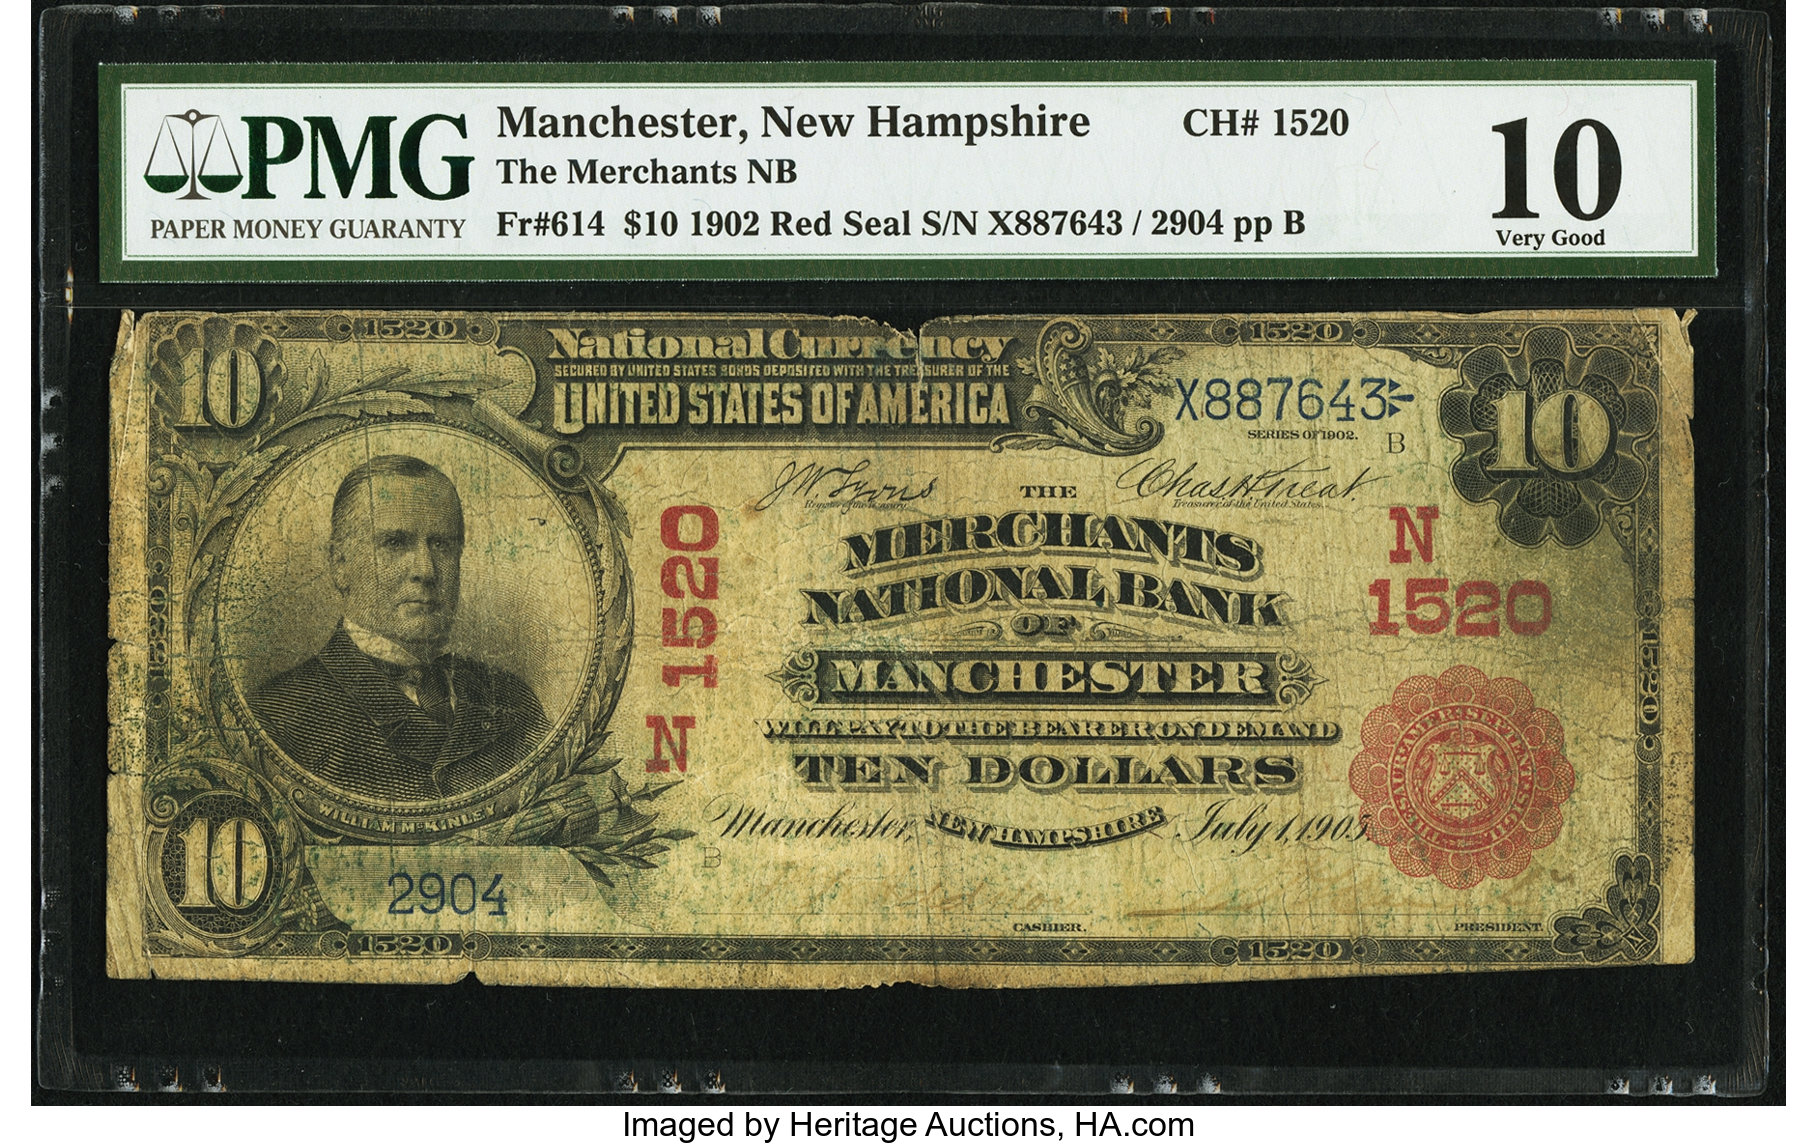 sample image for 1902 3rd Charter Period $10  Red Seal 1st Issue (Fr.# 614)